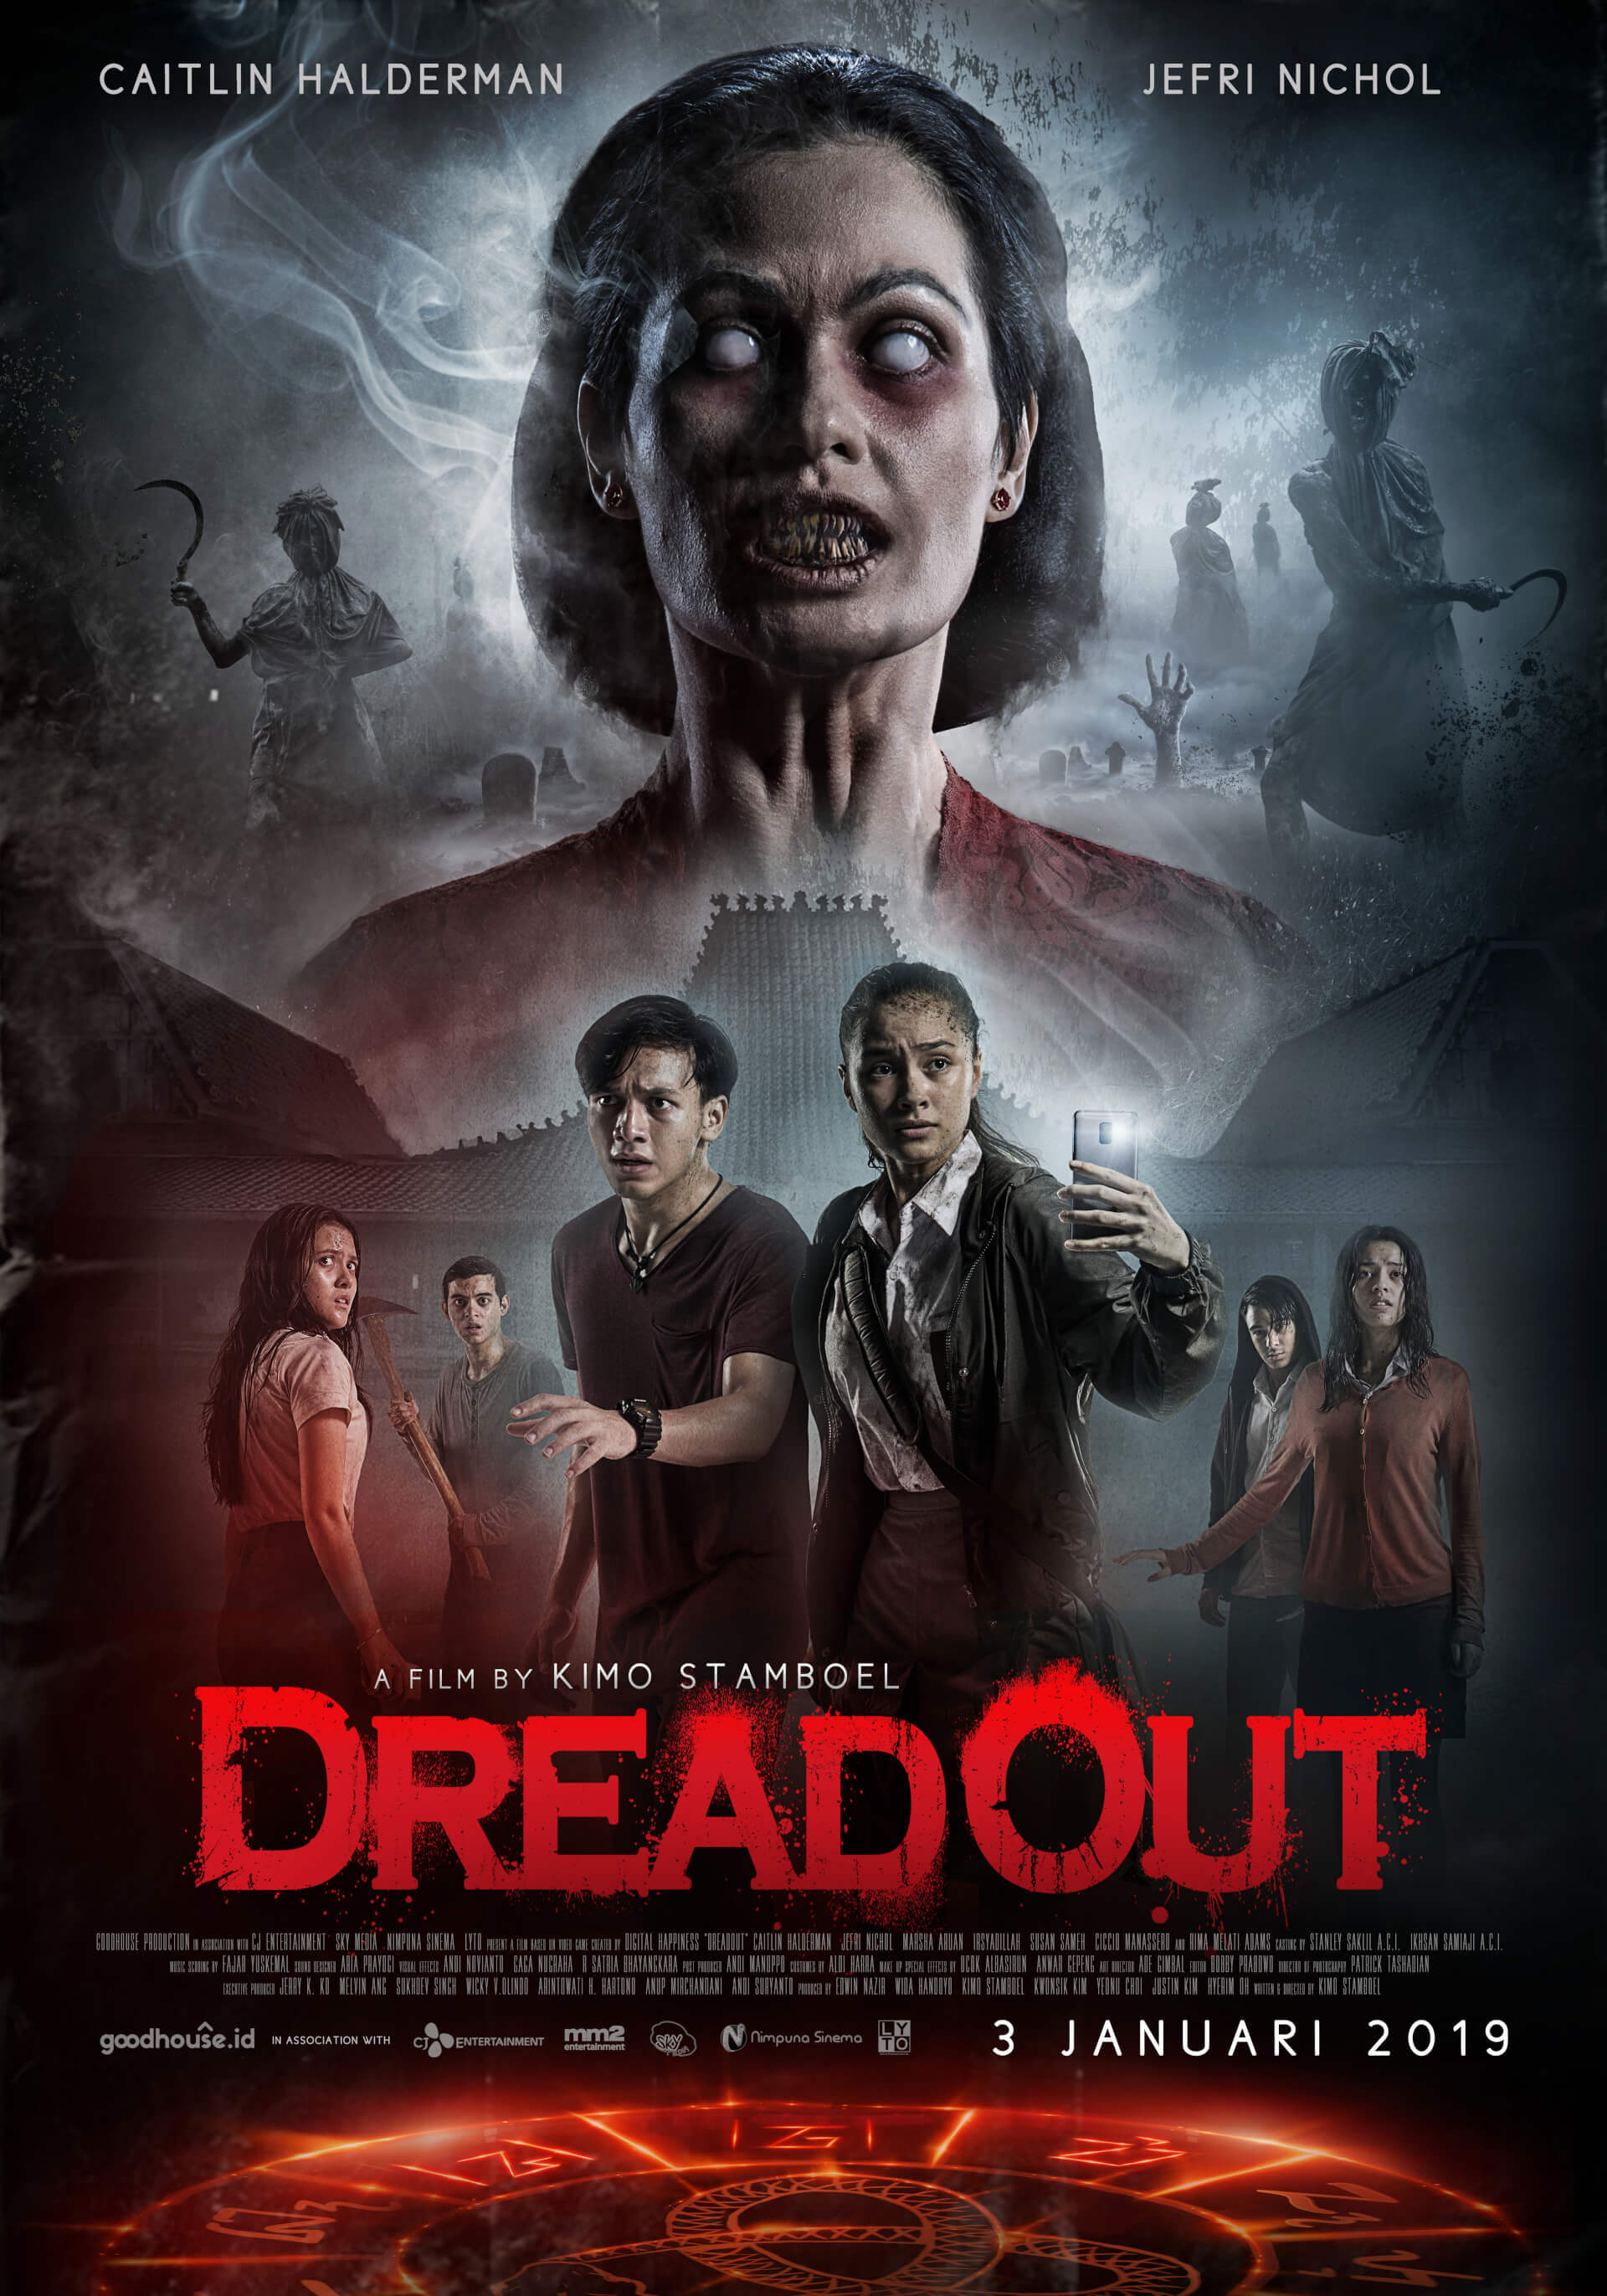 Fantasia 2019: Dreadout Review